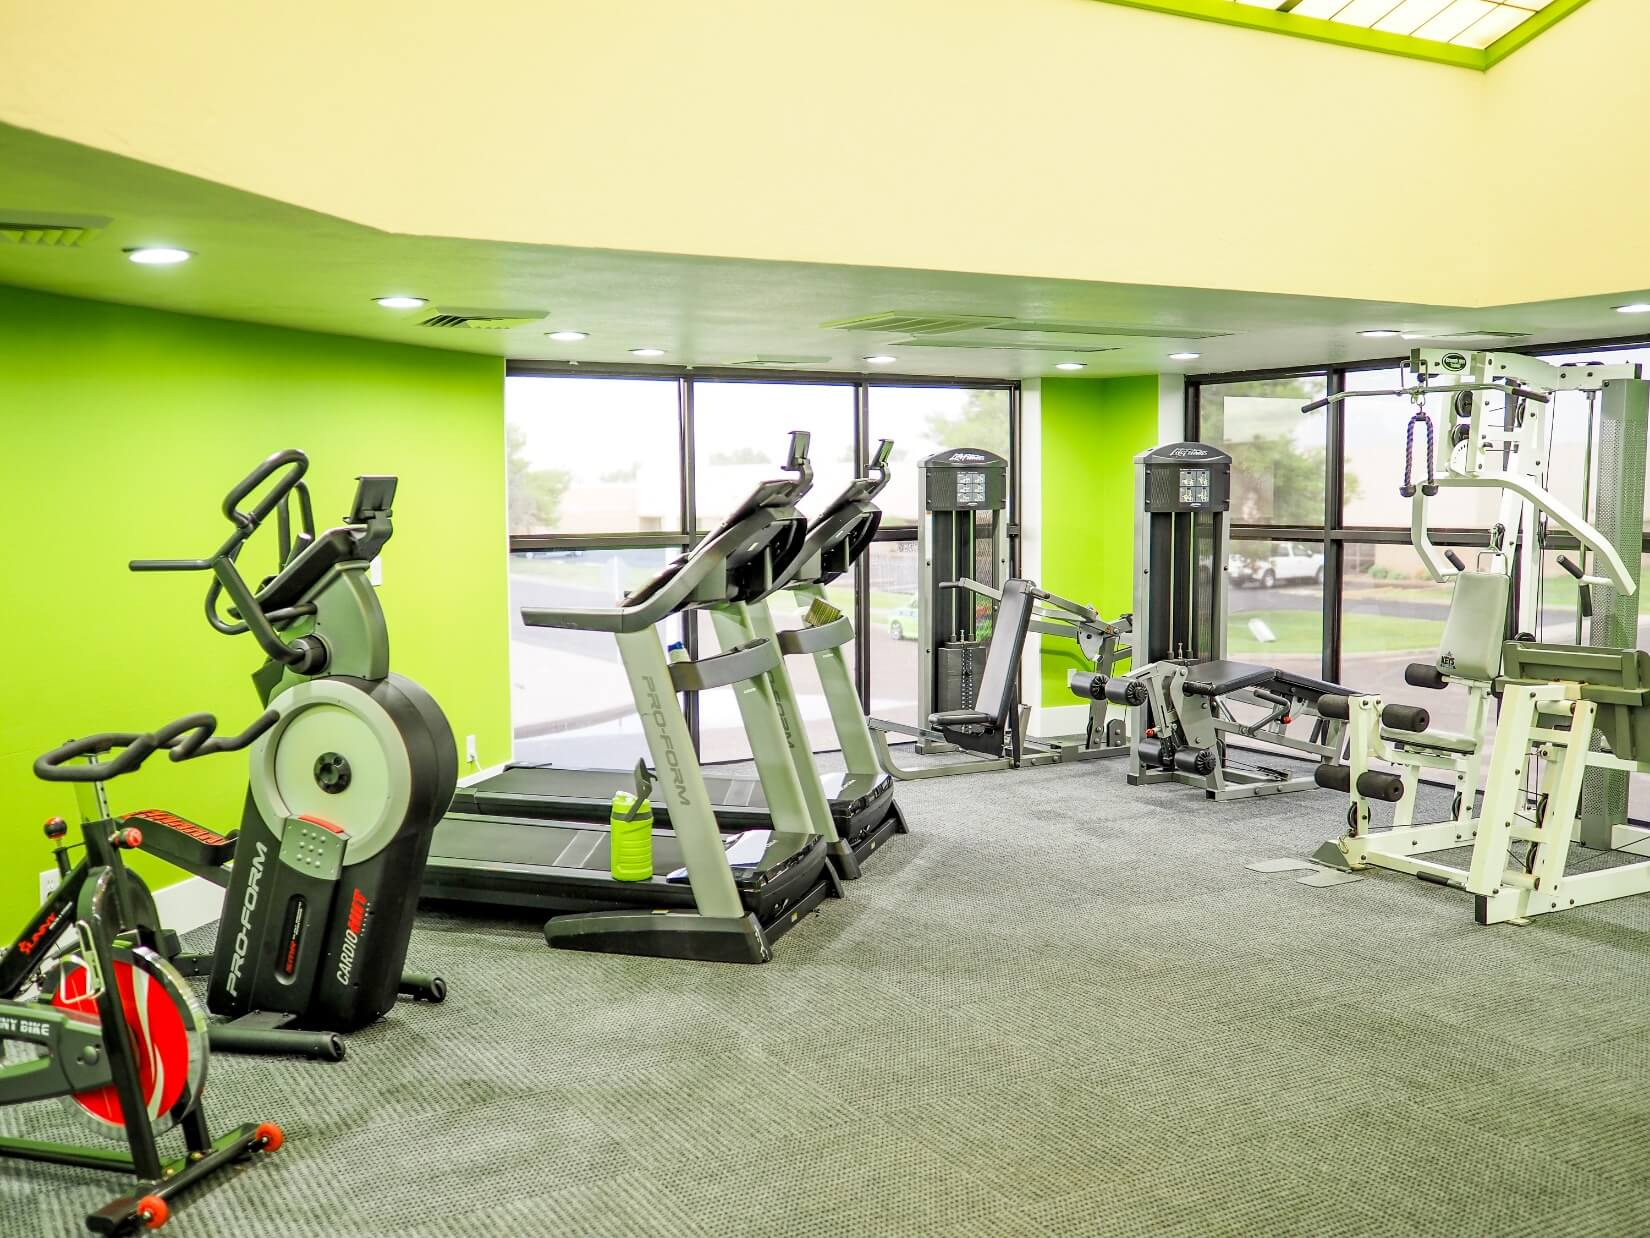 Another image of equipment in the gym upstairs